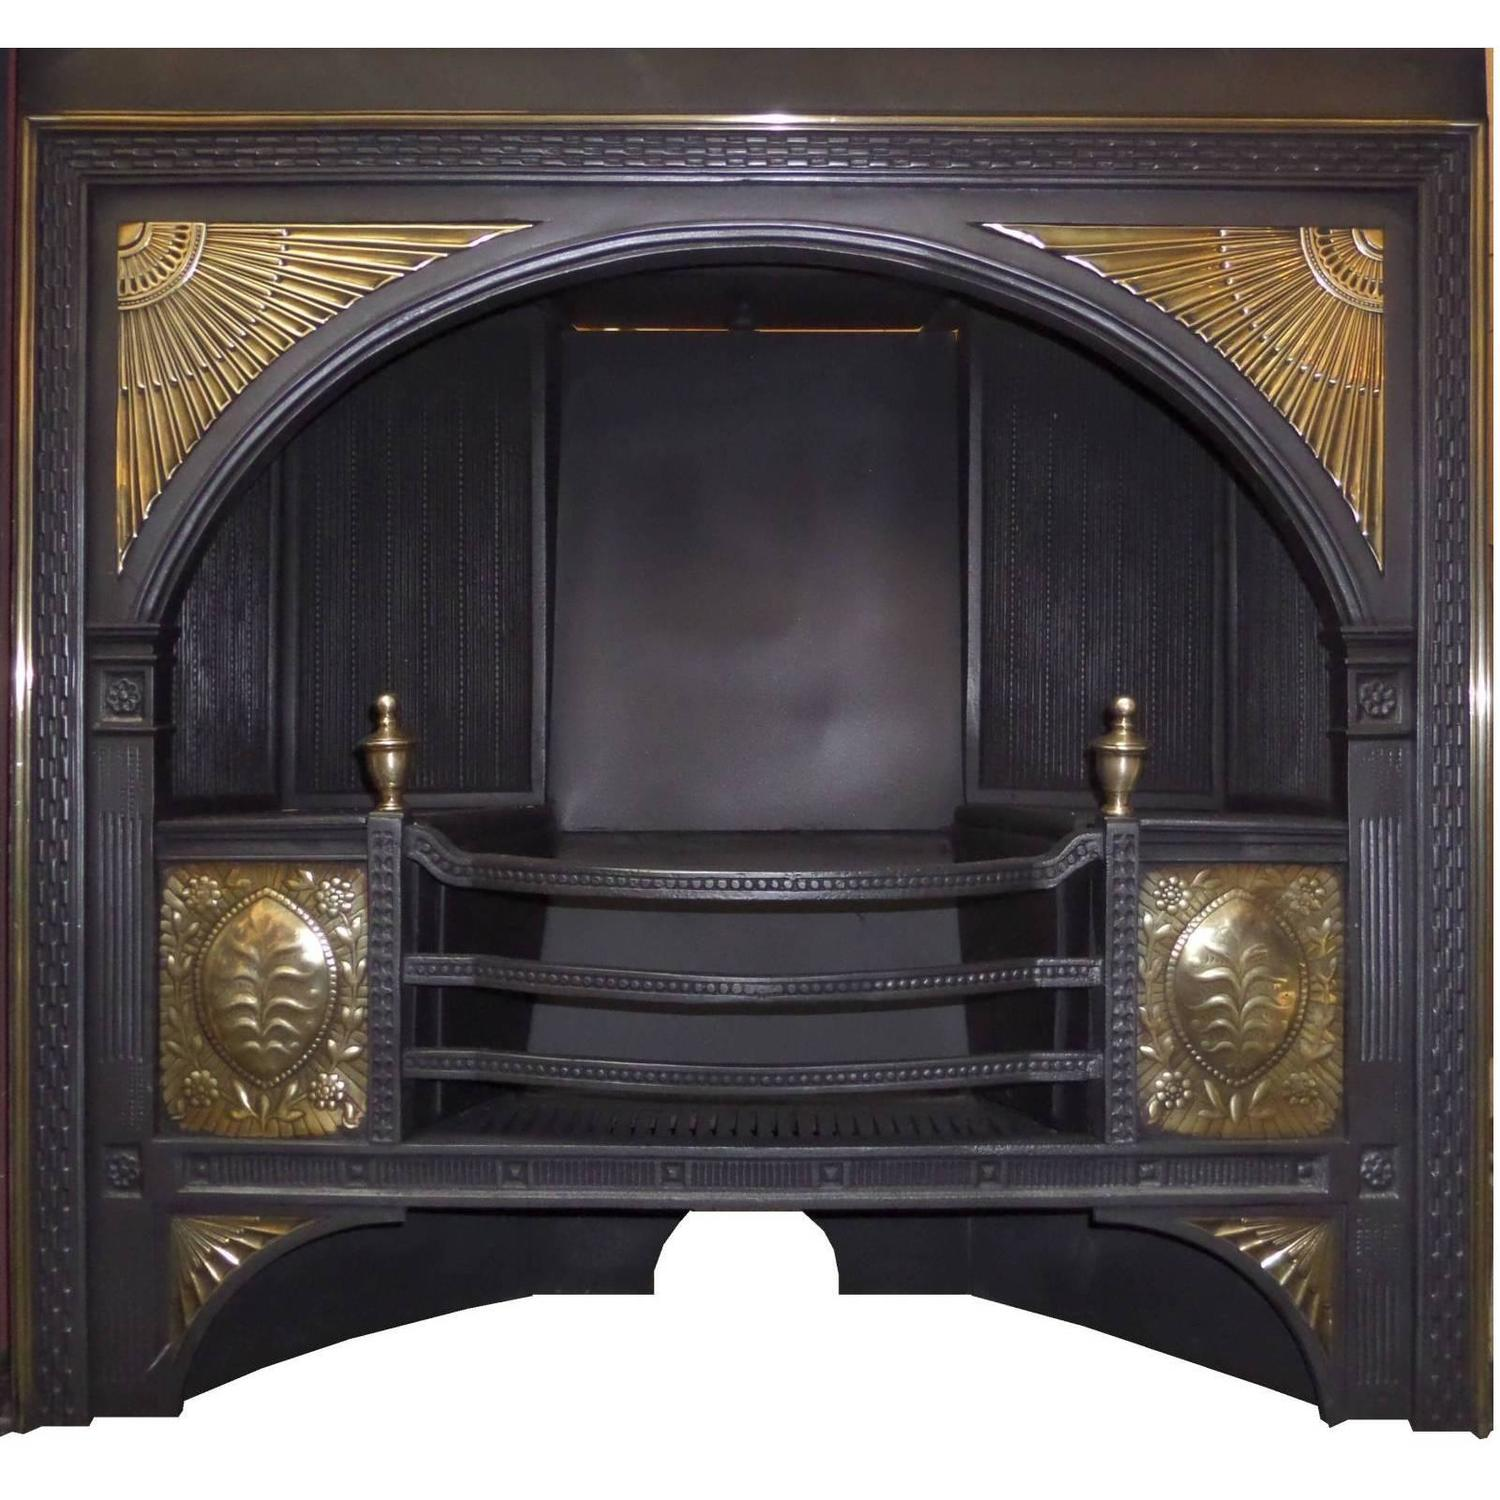 19th century georgian hob grate brass cast iron fireplace insert